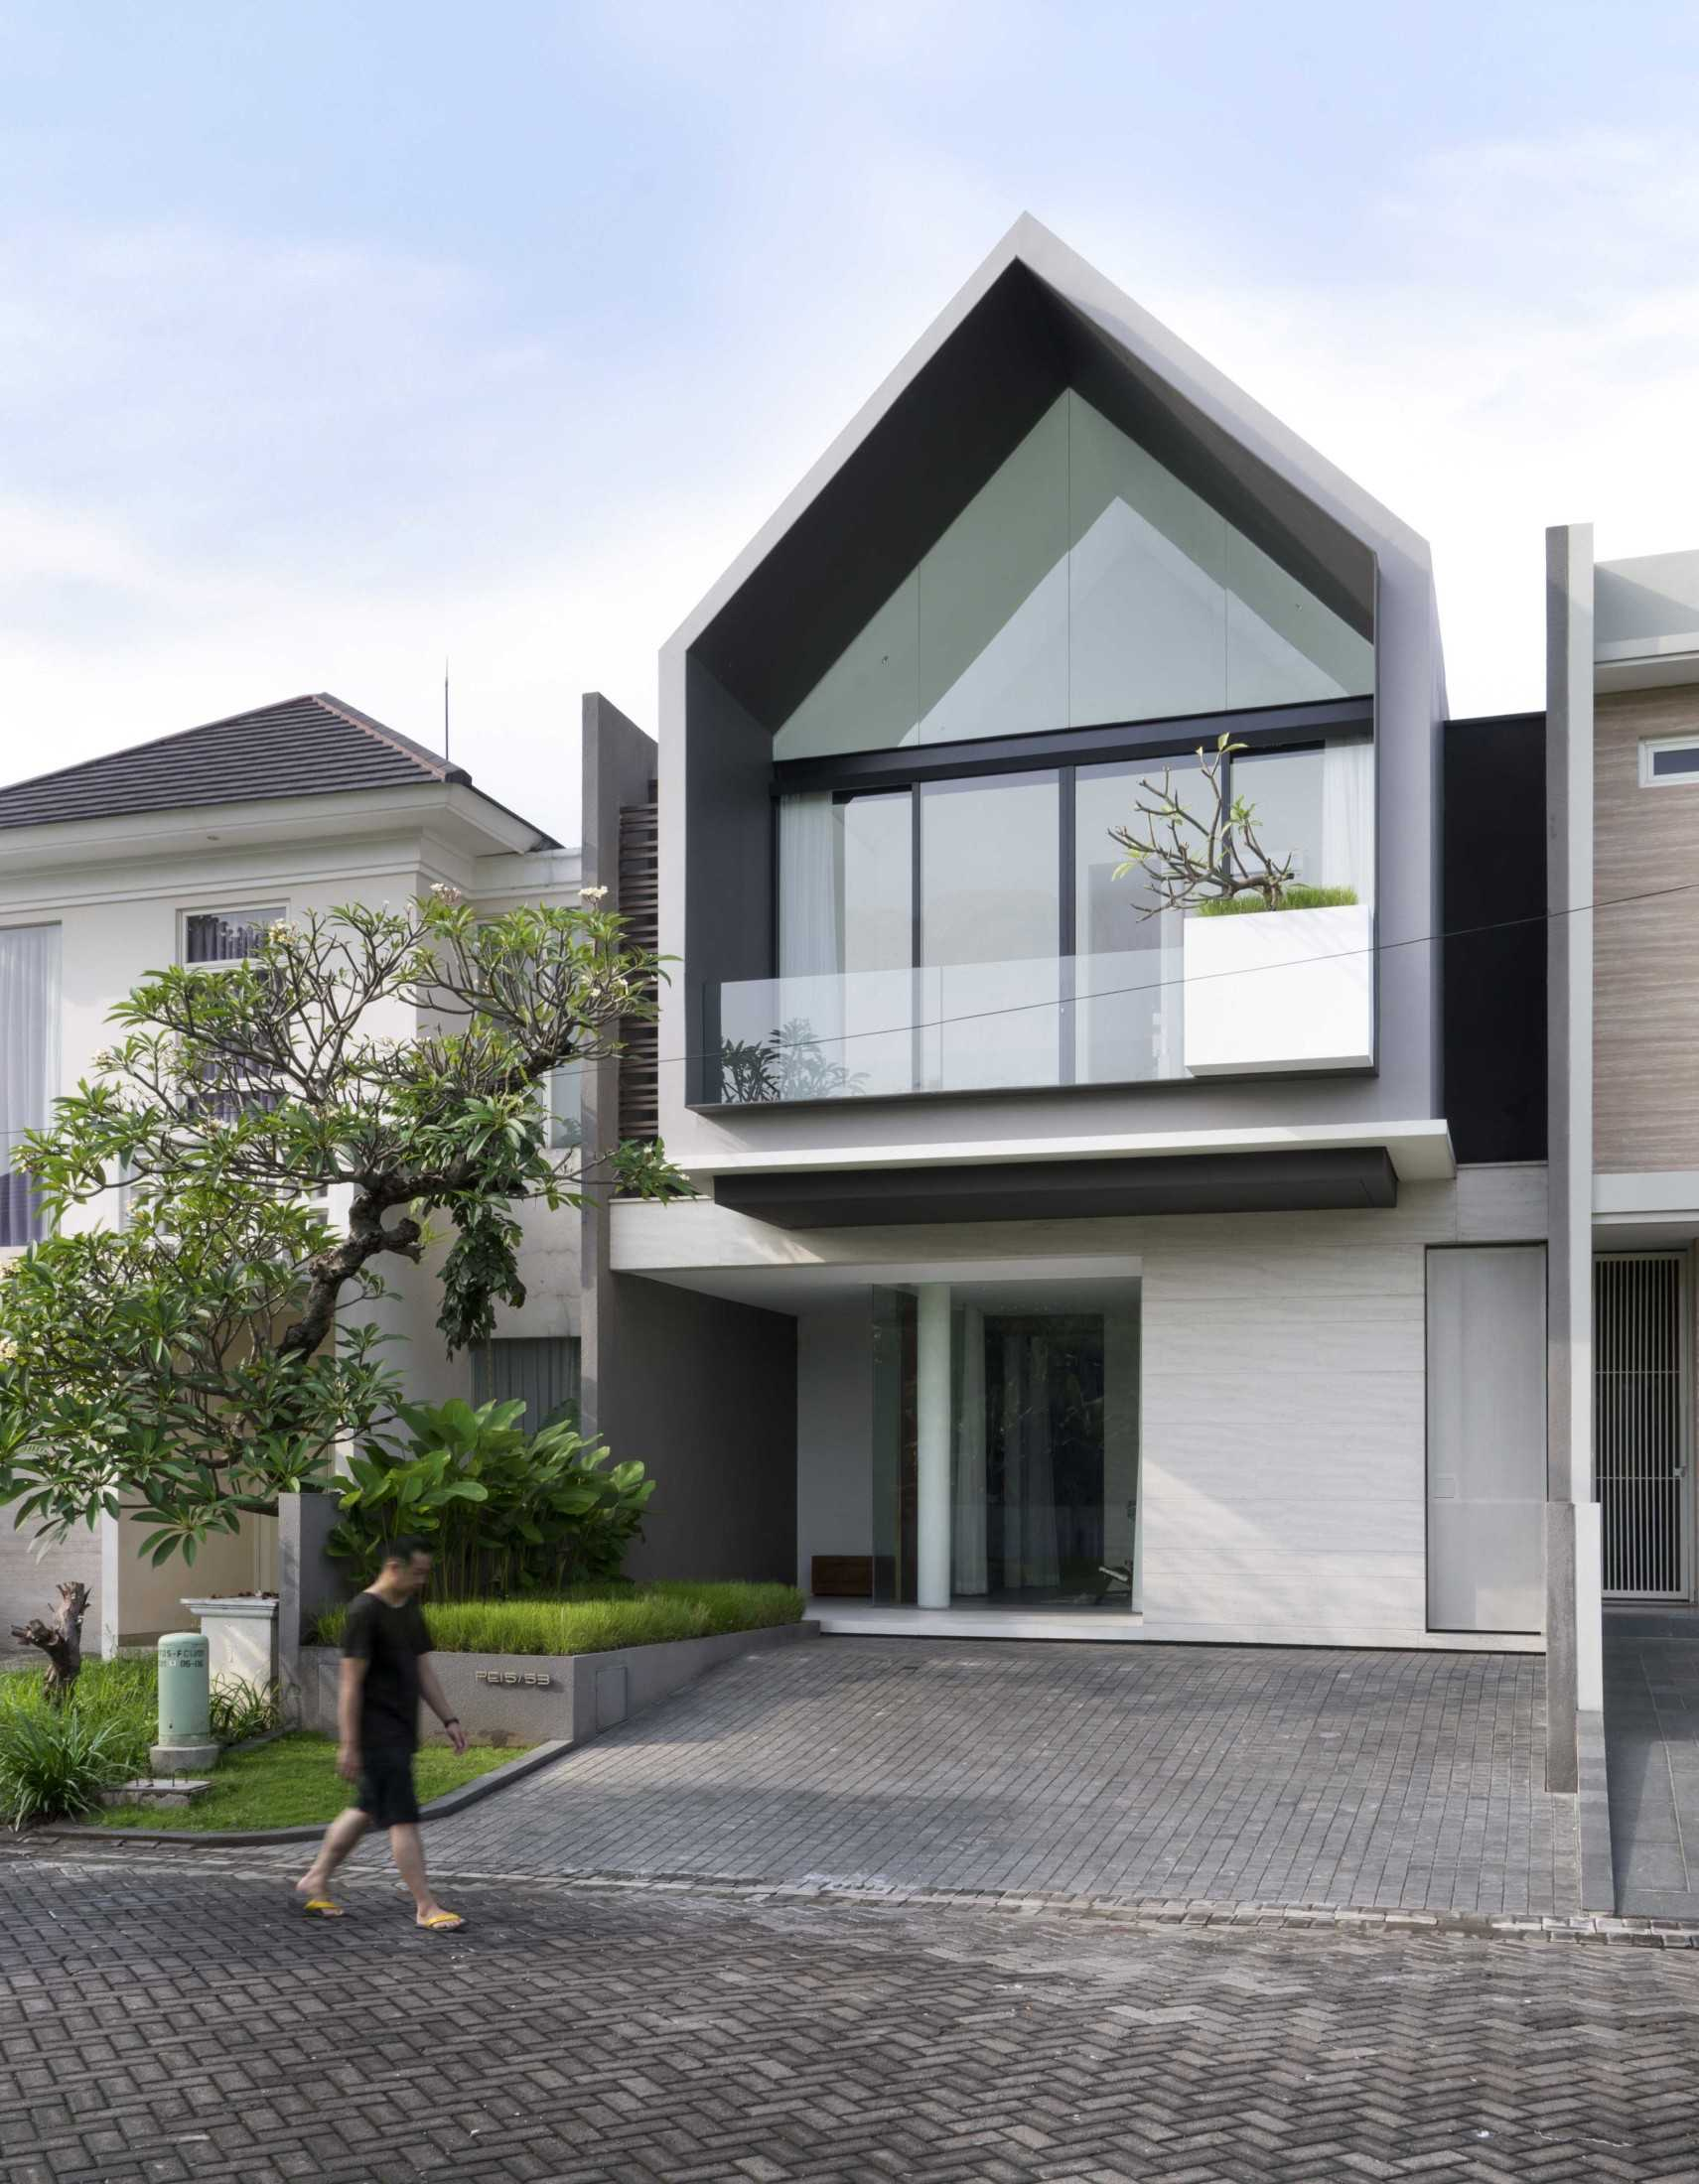 Simple Projects Architecture 'hhh' House Surabaya, Kota Sby, Jawa Timur, Indonesia  Simple-Projects-Architecture-Hhh-House  75049